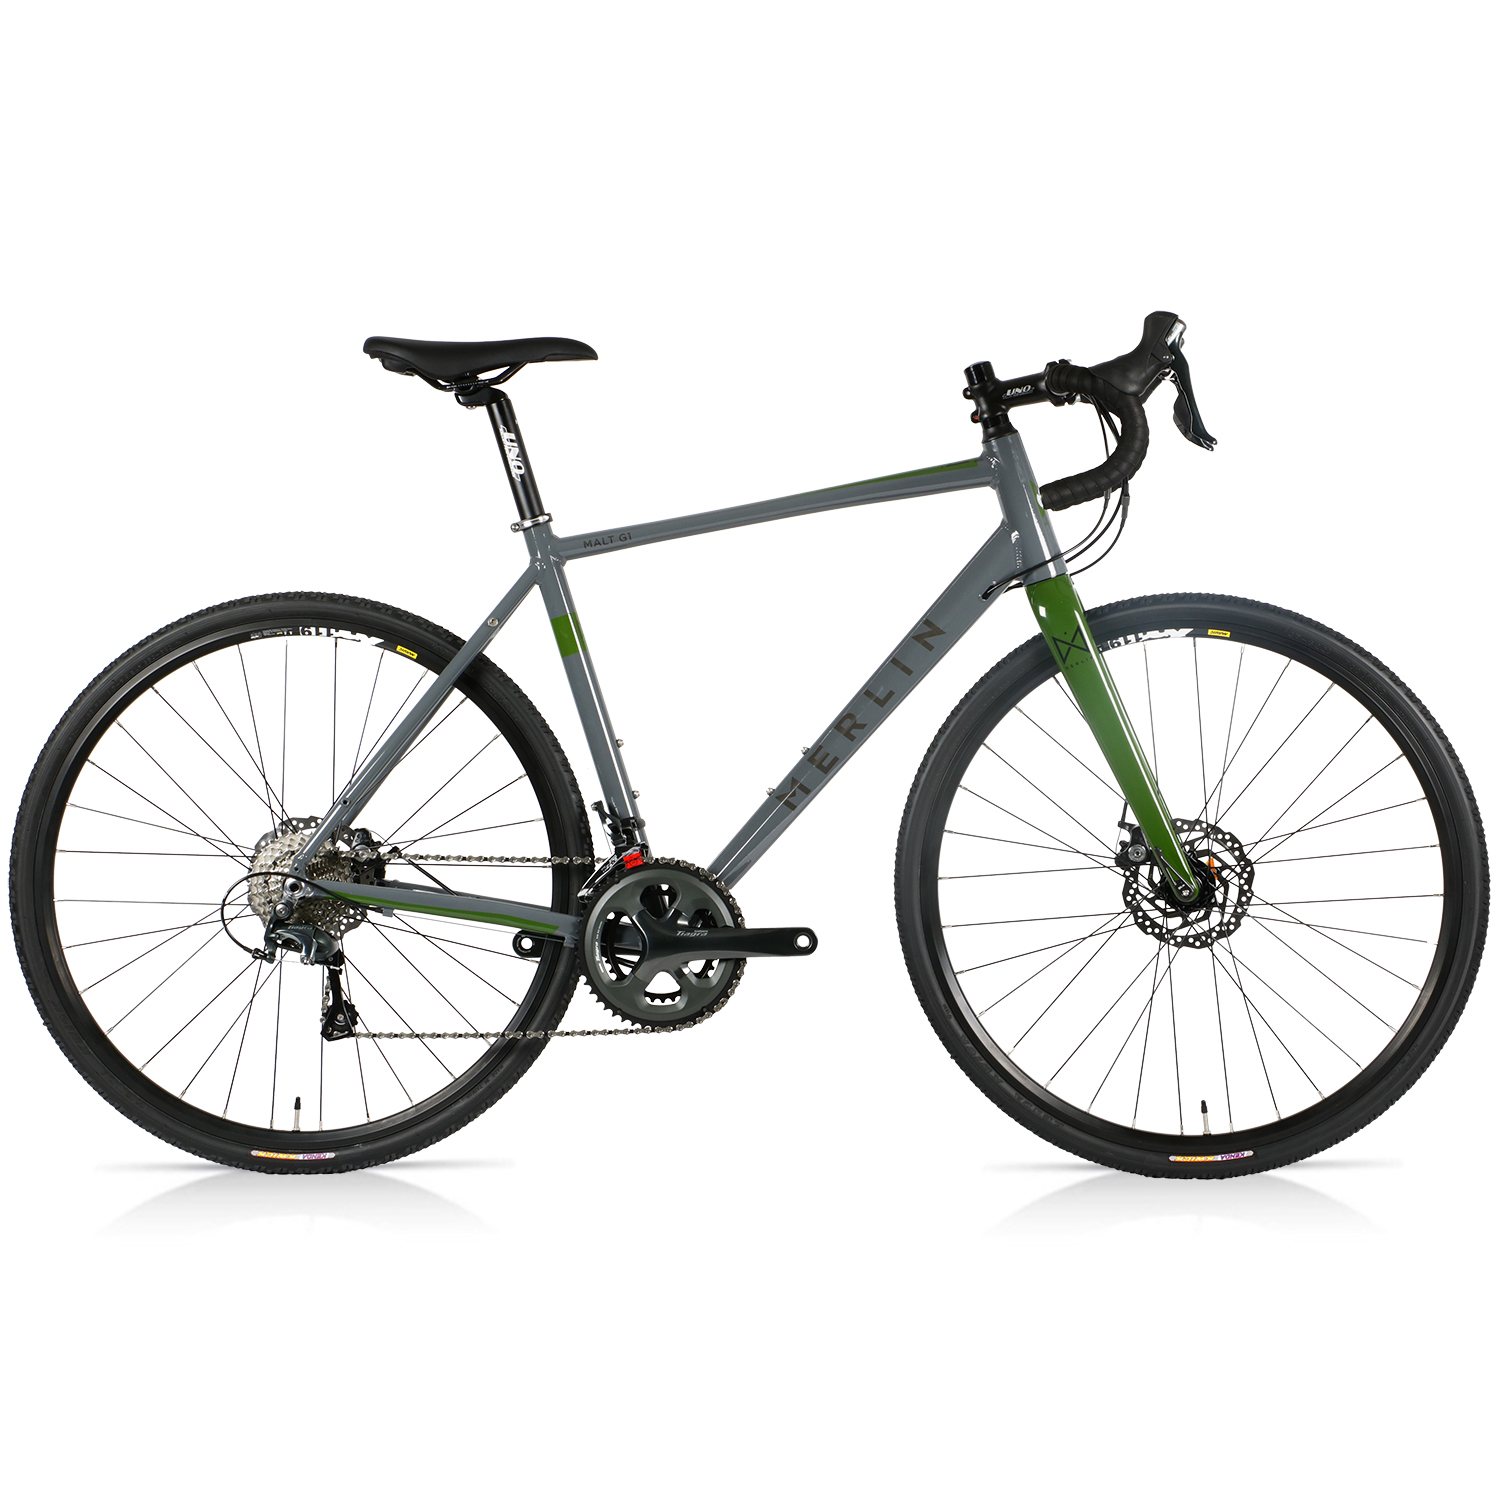 Merlin Malt-G1 Tiagra Gravel Bike – 2020